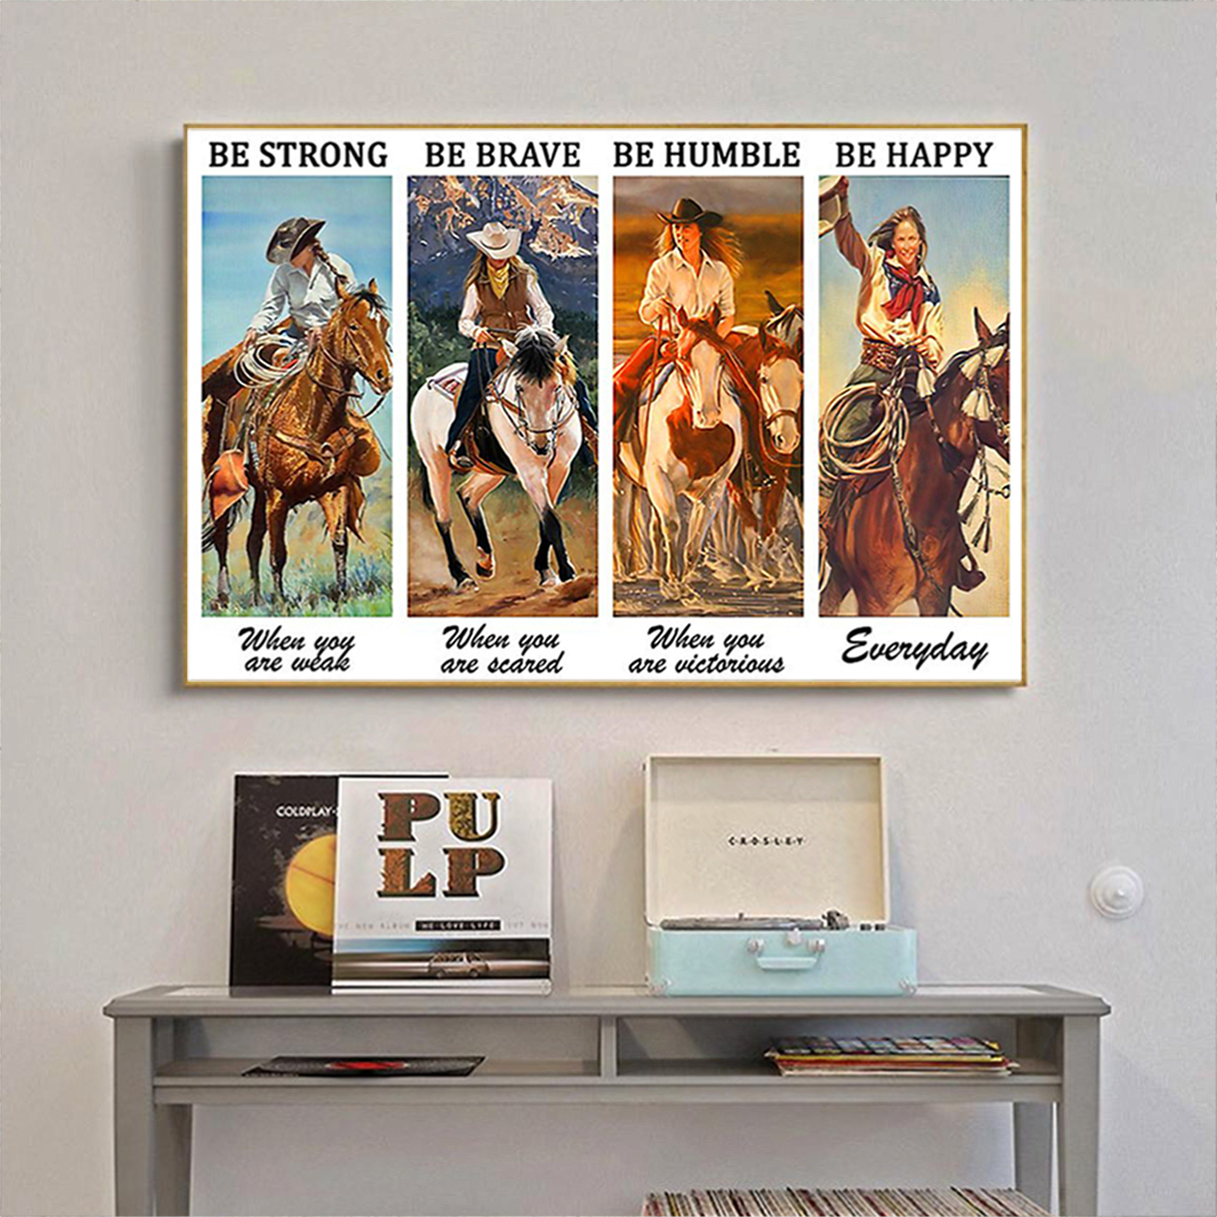 Cowgirl be strong when you are weak poster A2